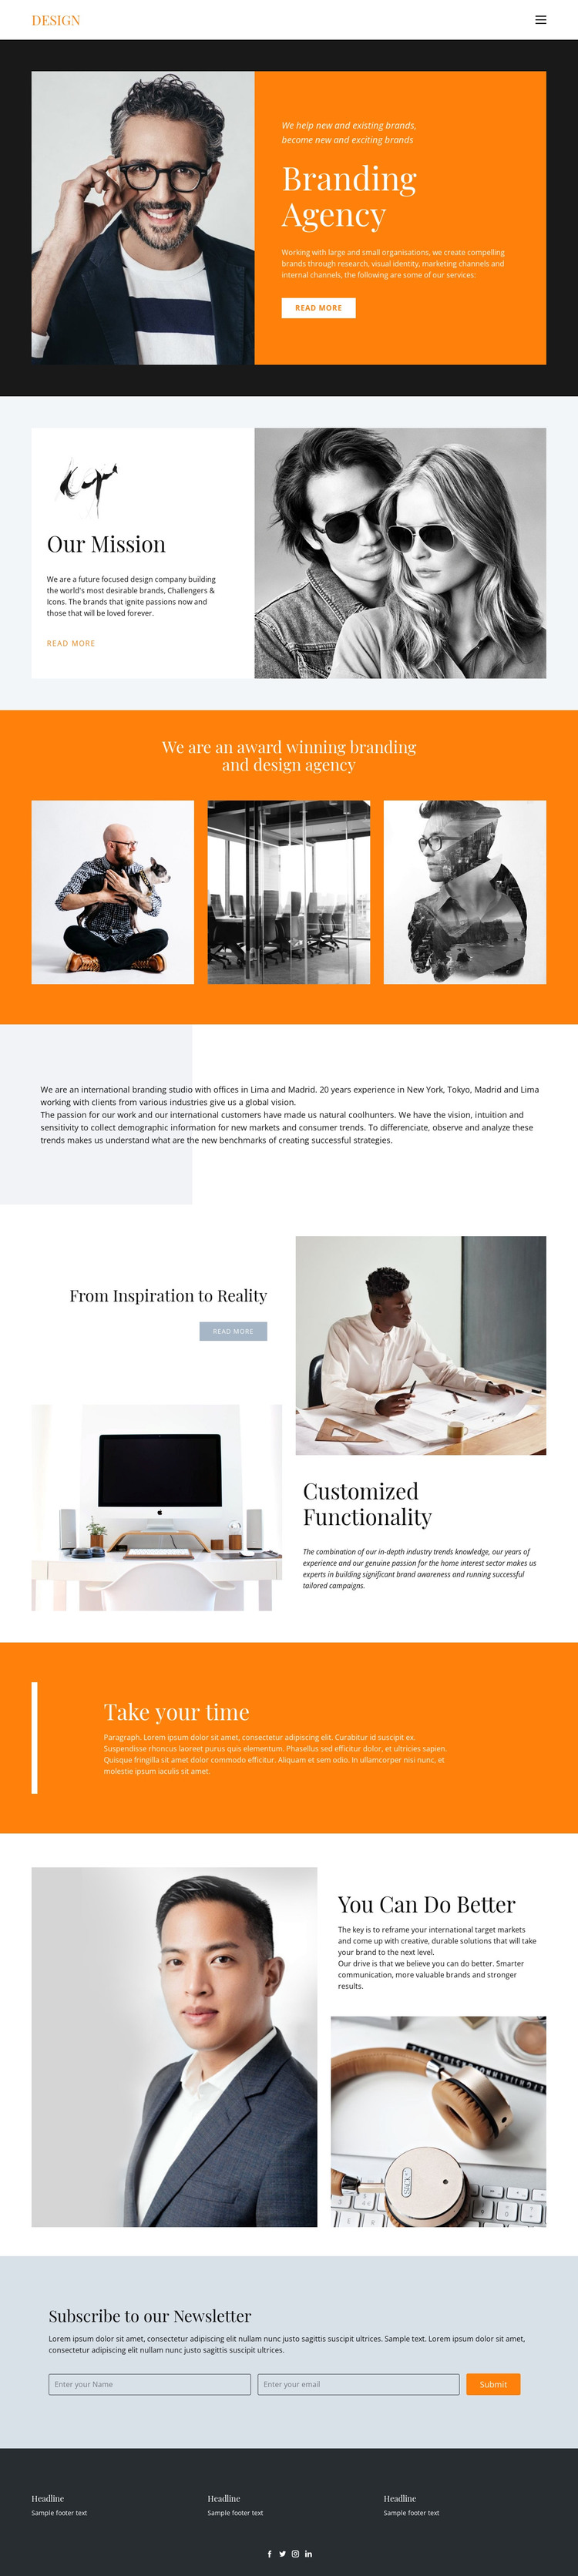 Desired results in business Web Design